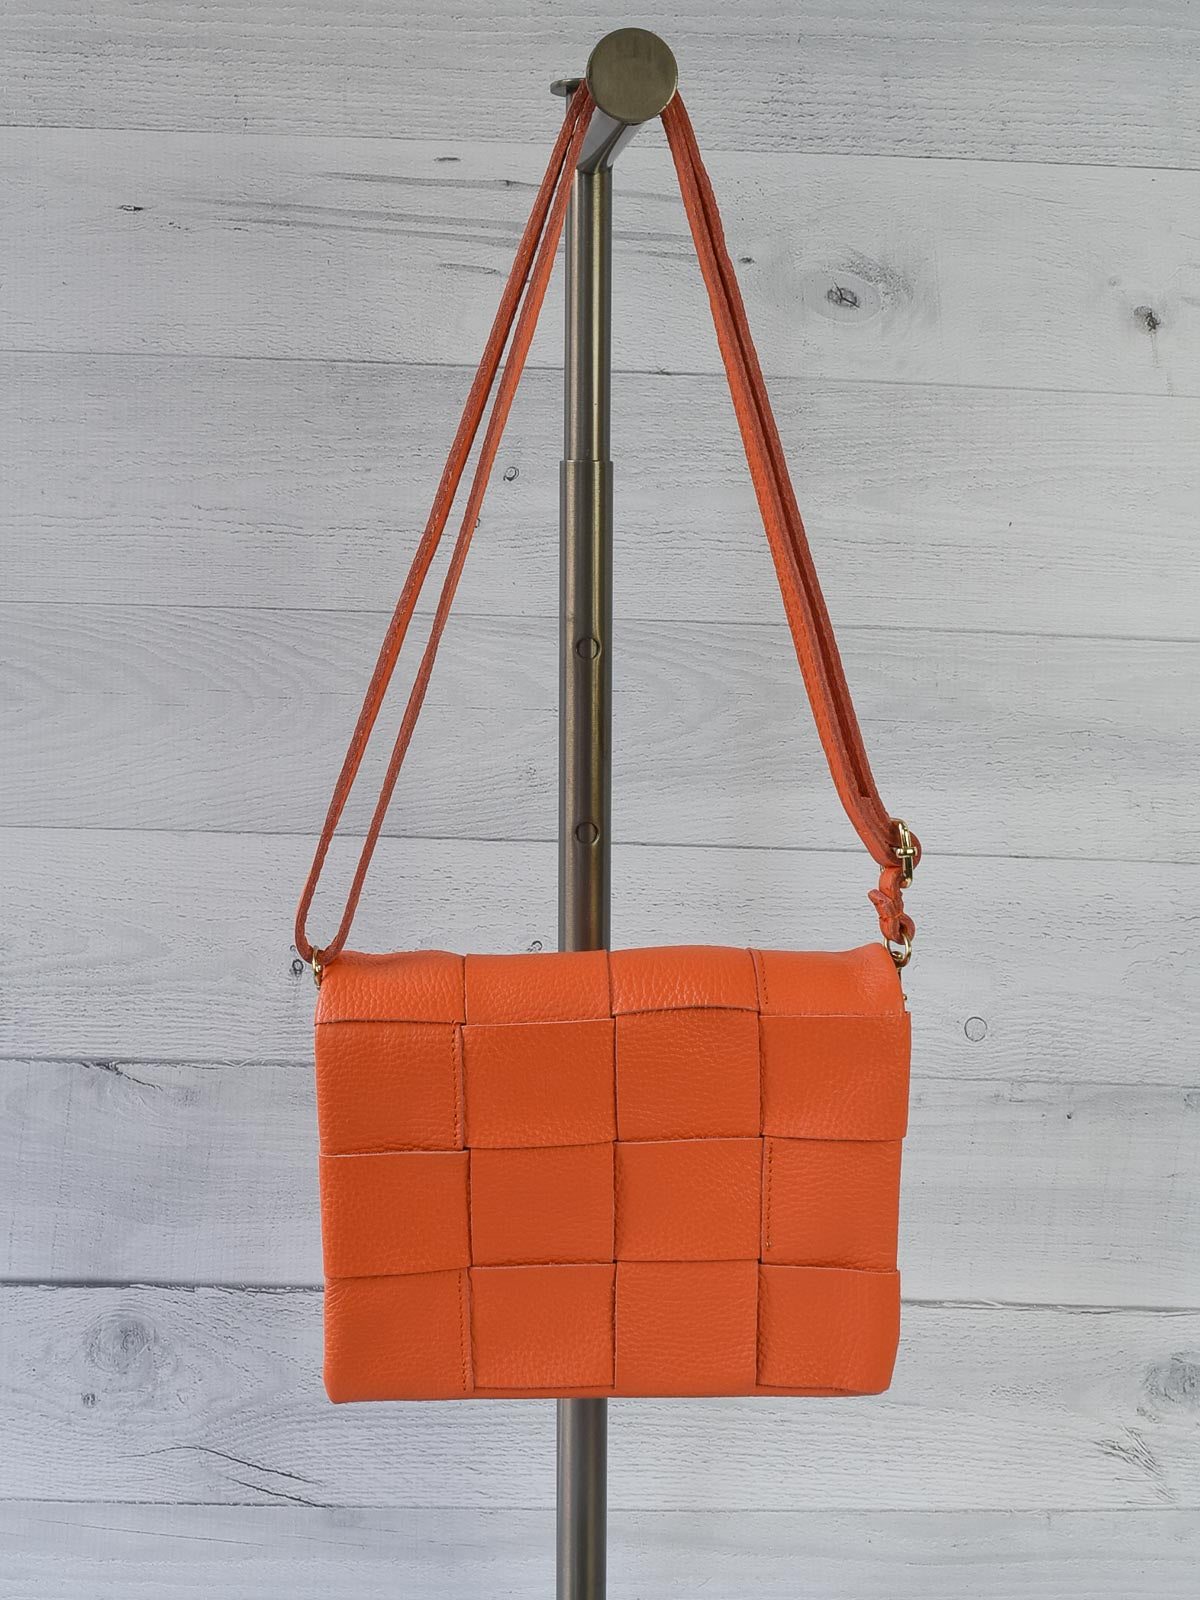 Jijou Capri Damier Woven Leather Crossbody Bag, Orange - Statement Boutique